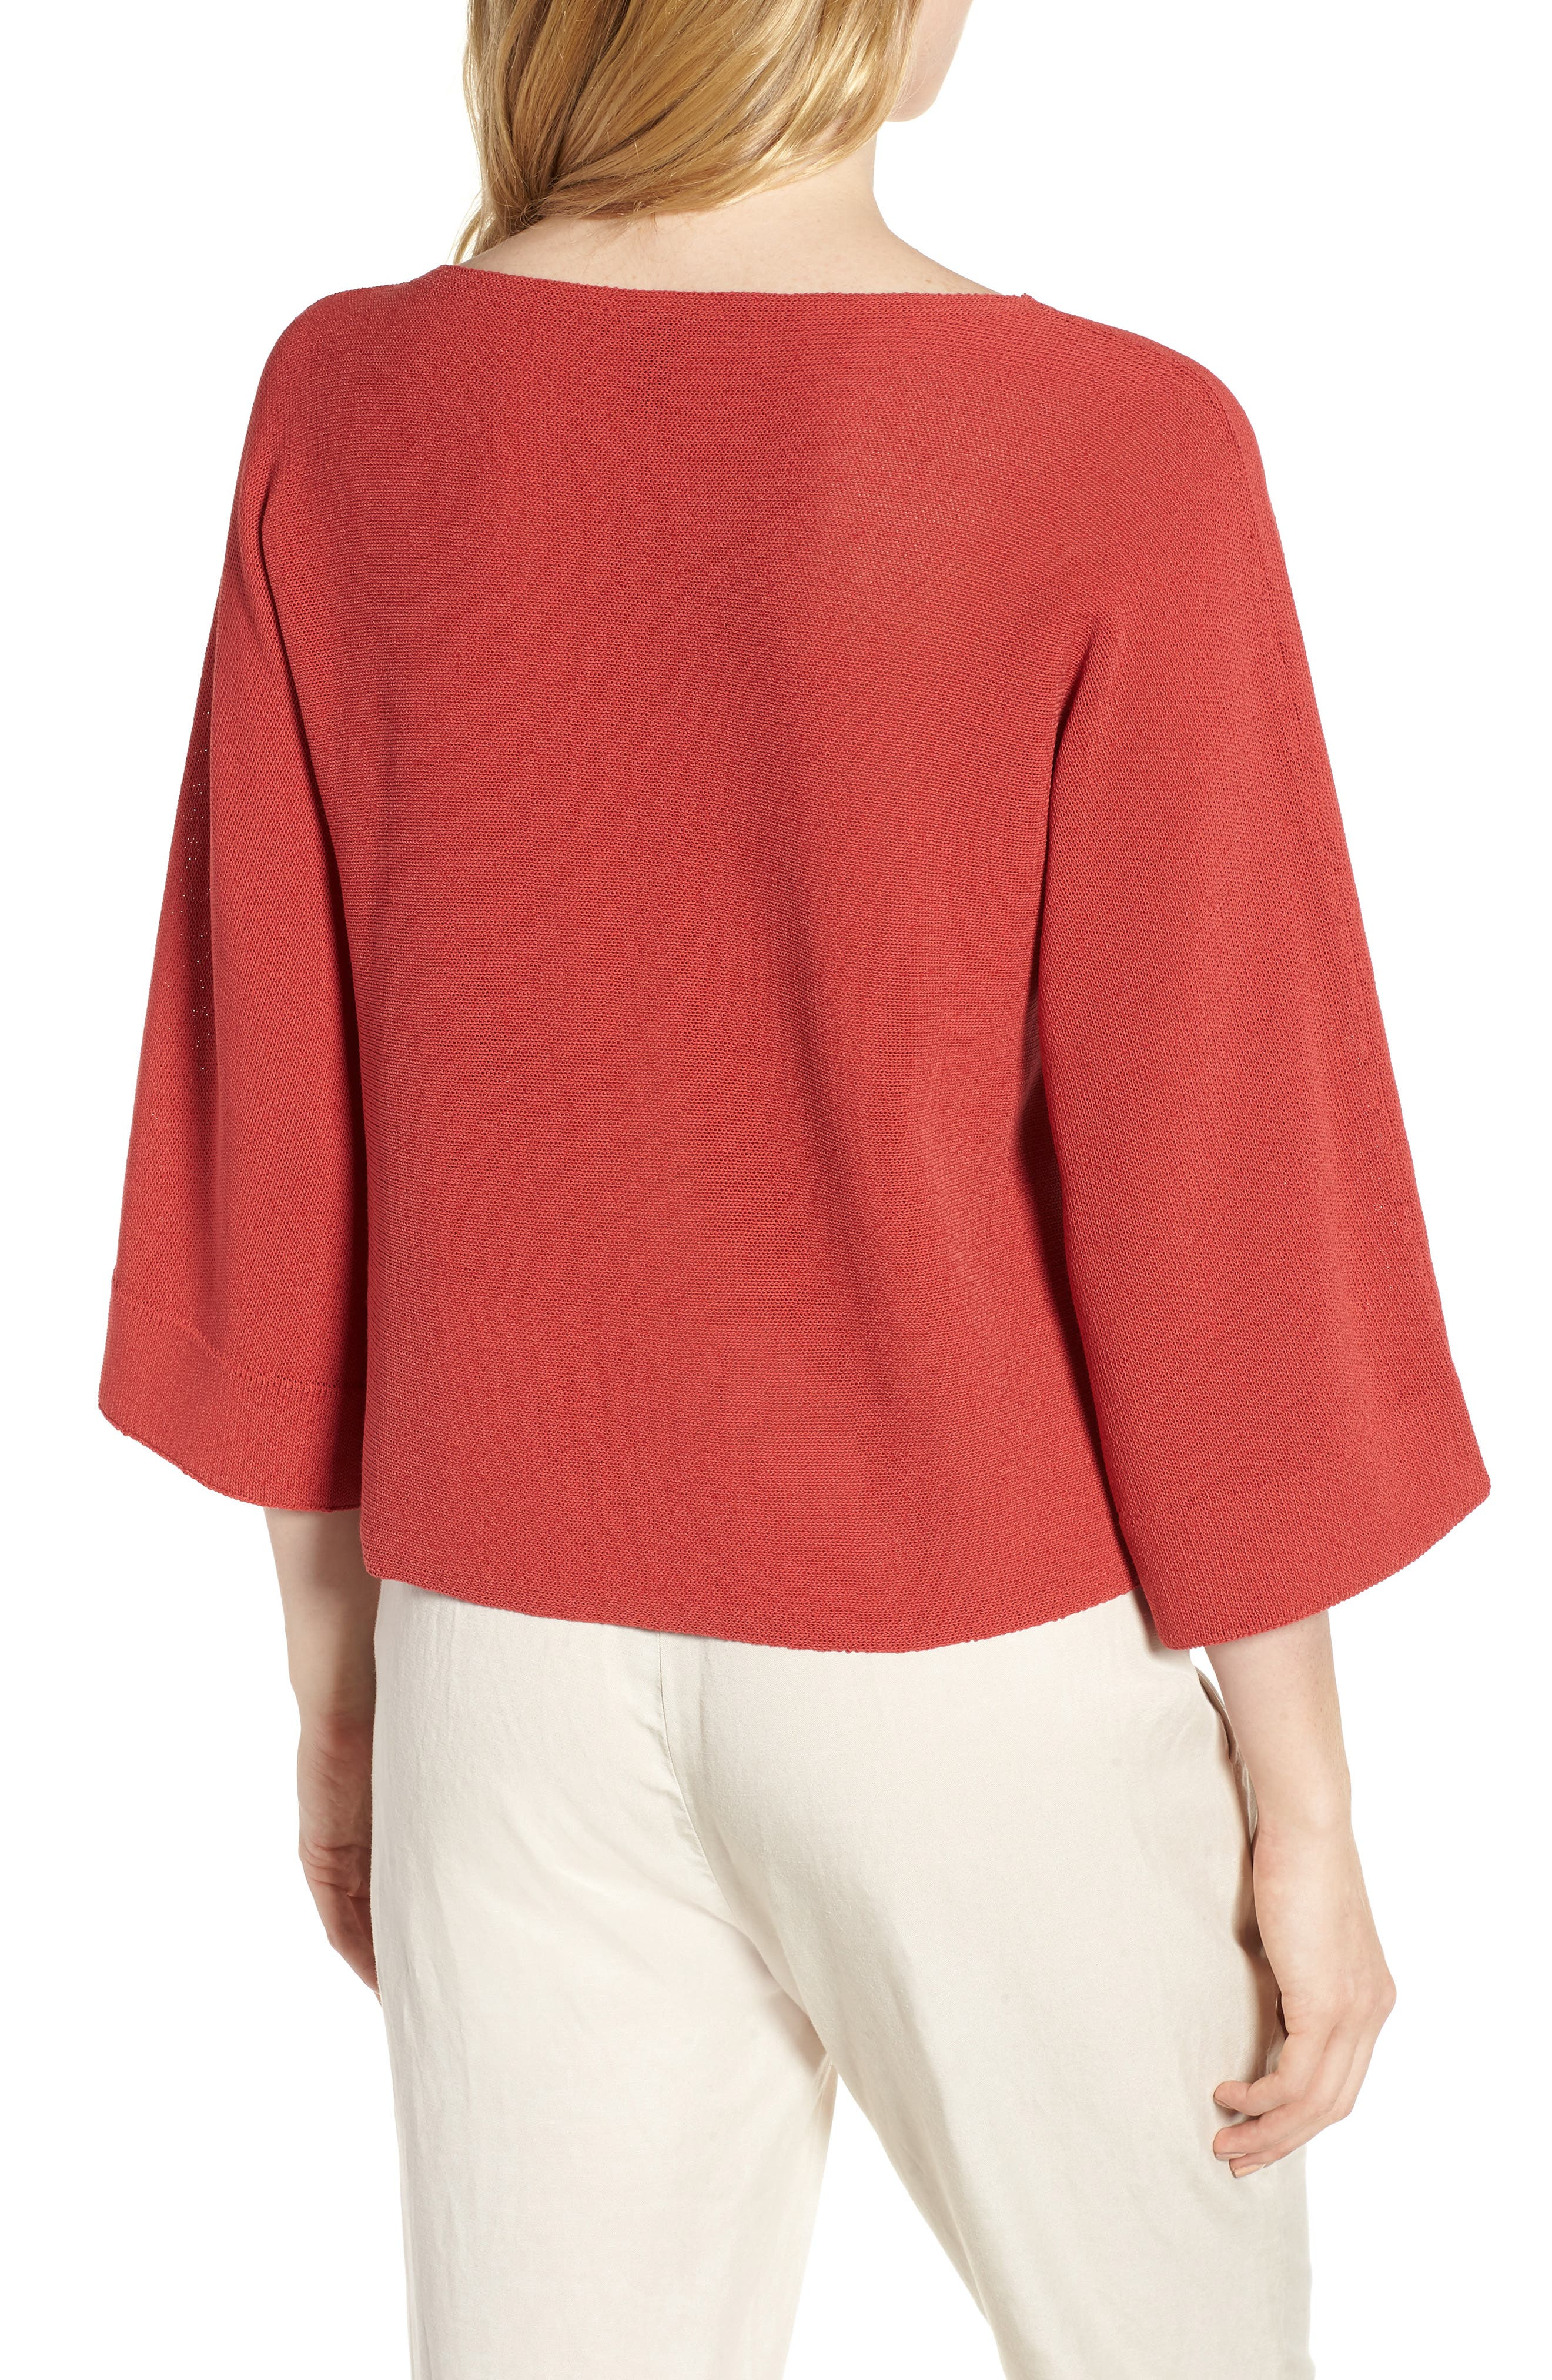 Organic Cotton Blend Sweater,                             Alternate thumbnail 9, color,